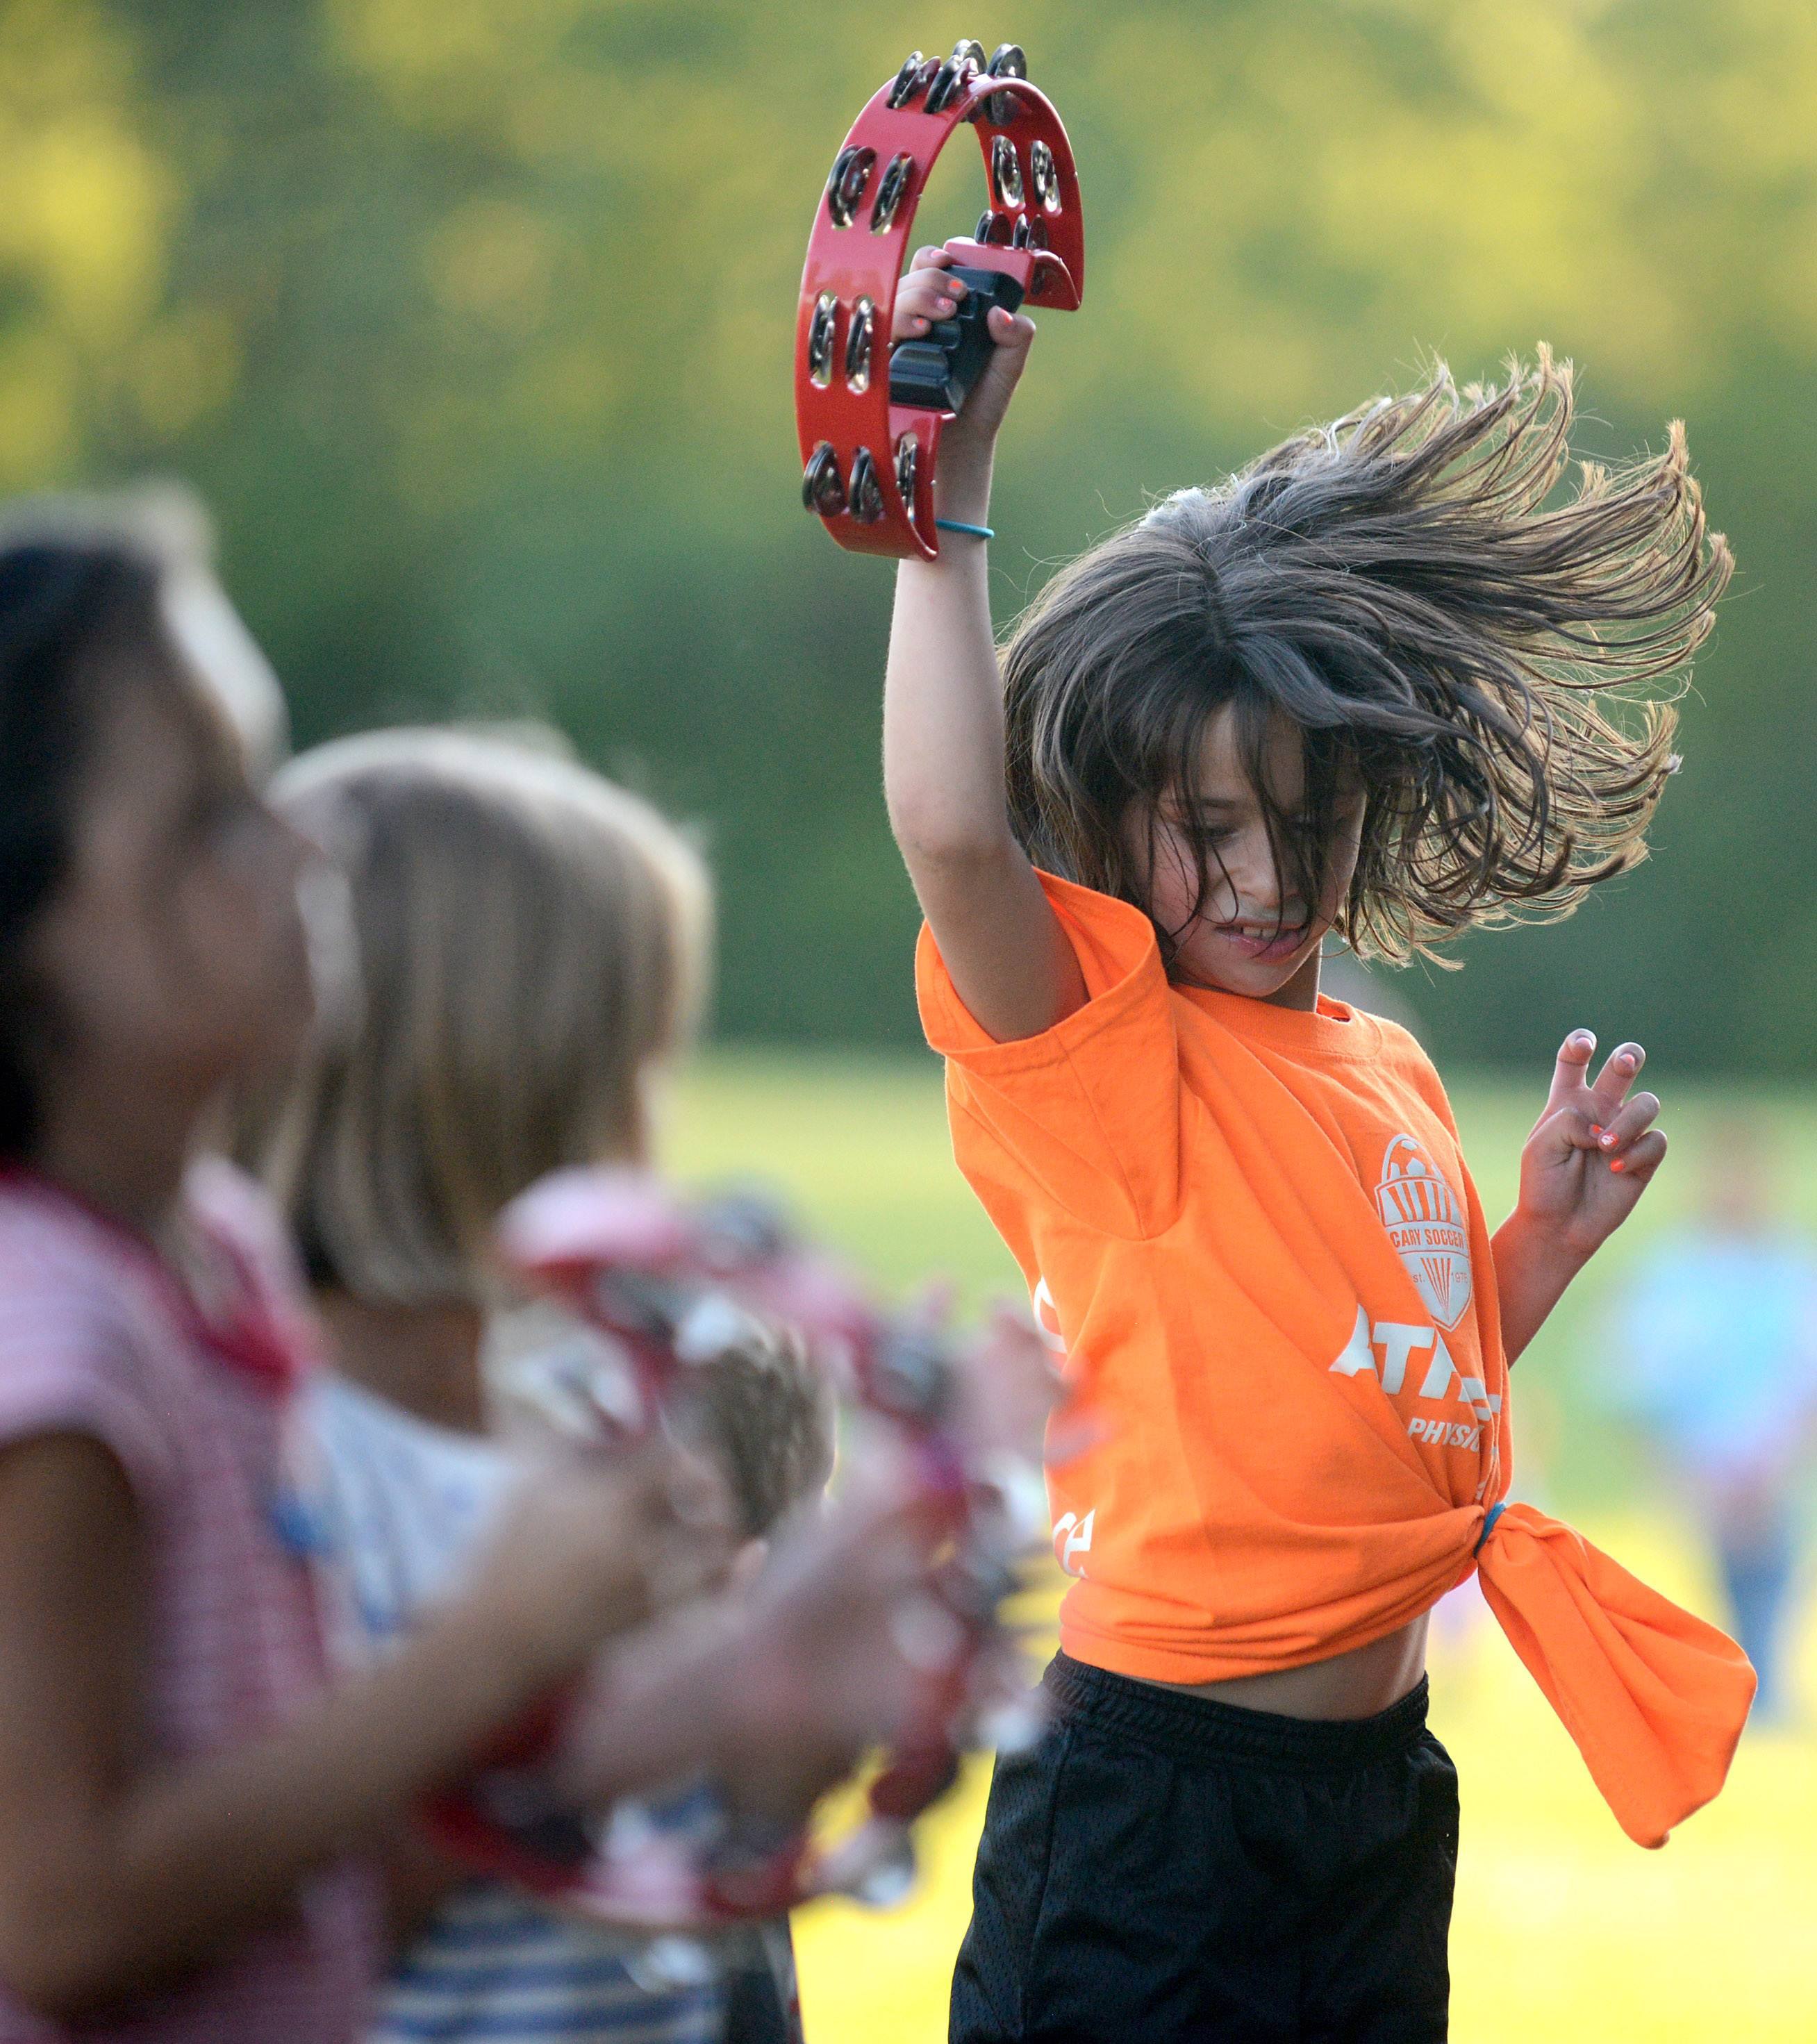 Meredith Levine, 7, of Cary, rocks out to her proclaimed favorite group, Alex and The Allstars at the Cary Summer Celebration at Lions Park on Thursday. The band brought over 10 tambourines for kids to play along with them.